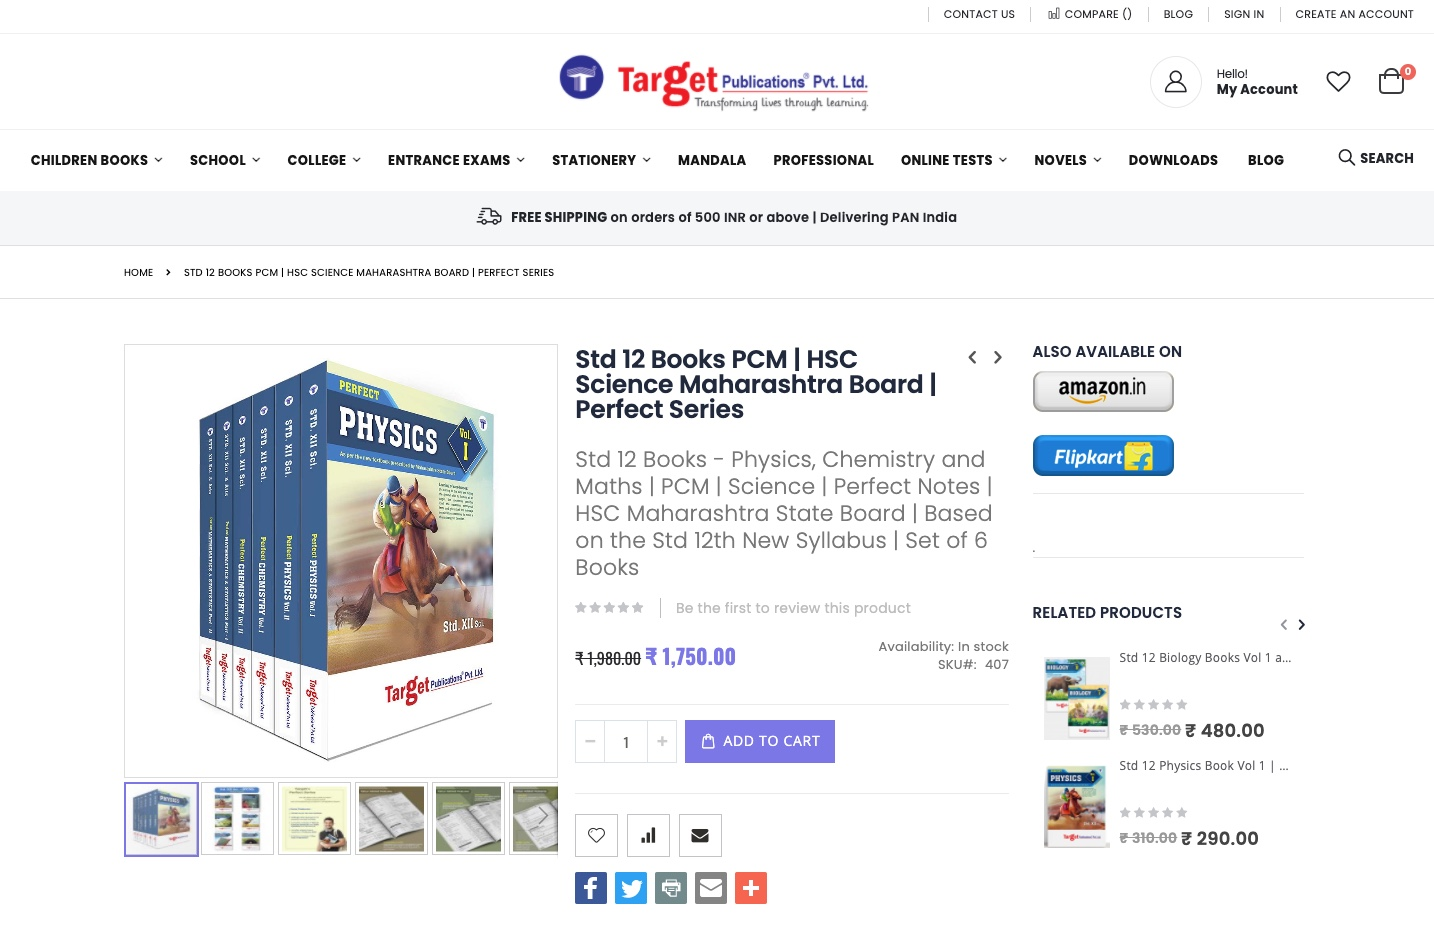 Product Detail Page Screenshot - Target Publications